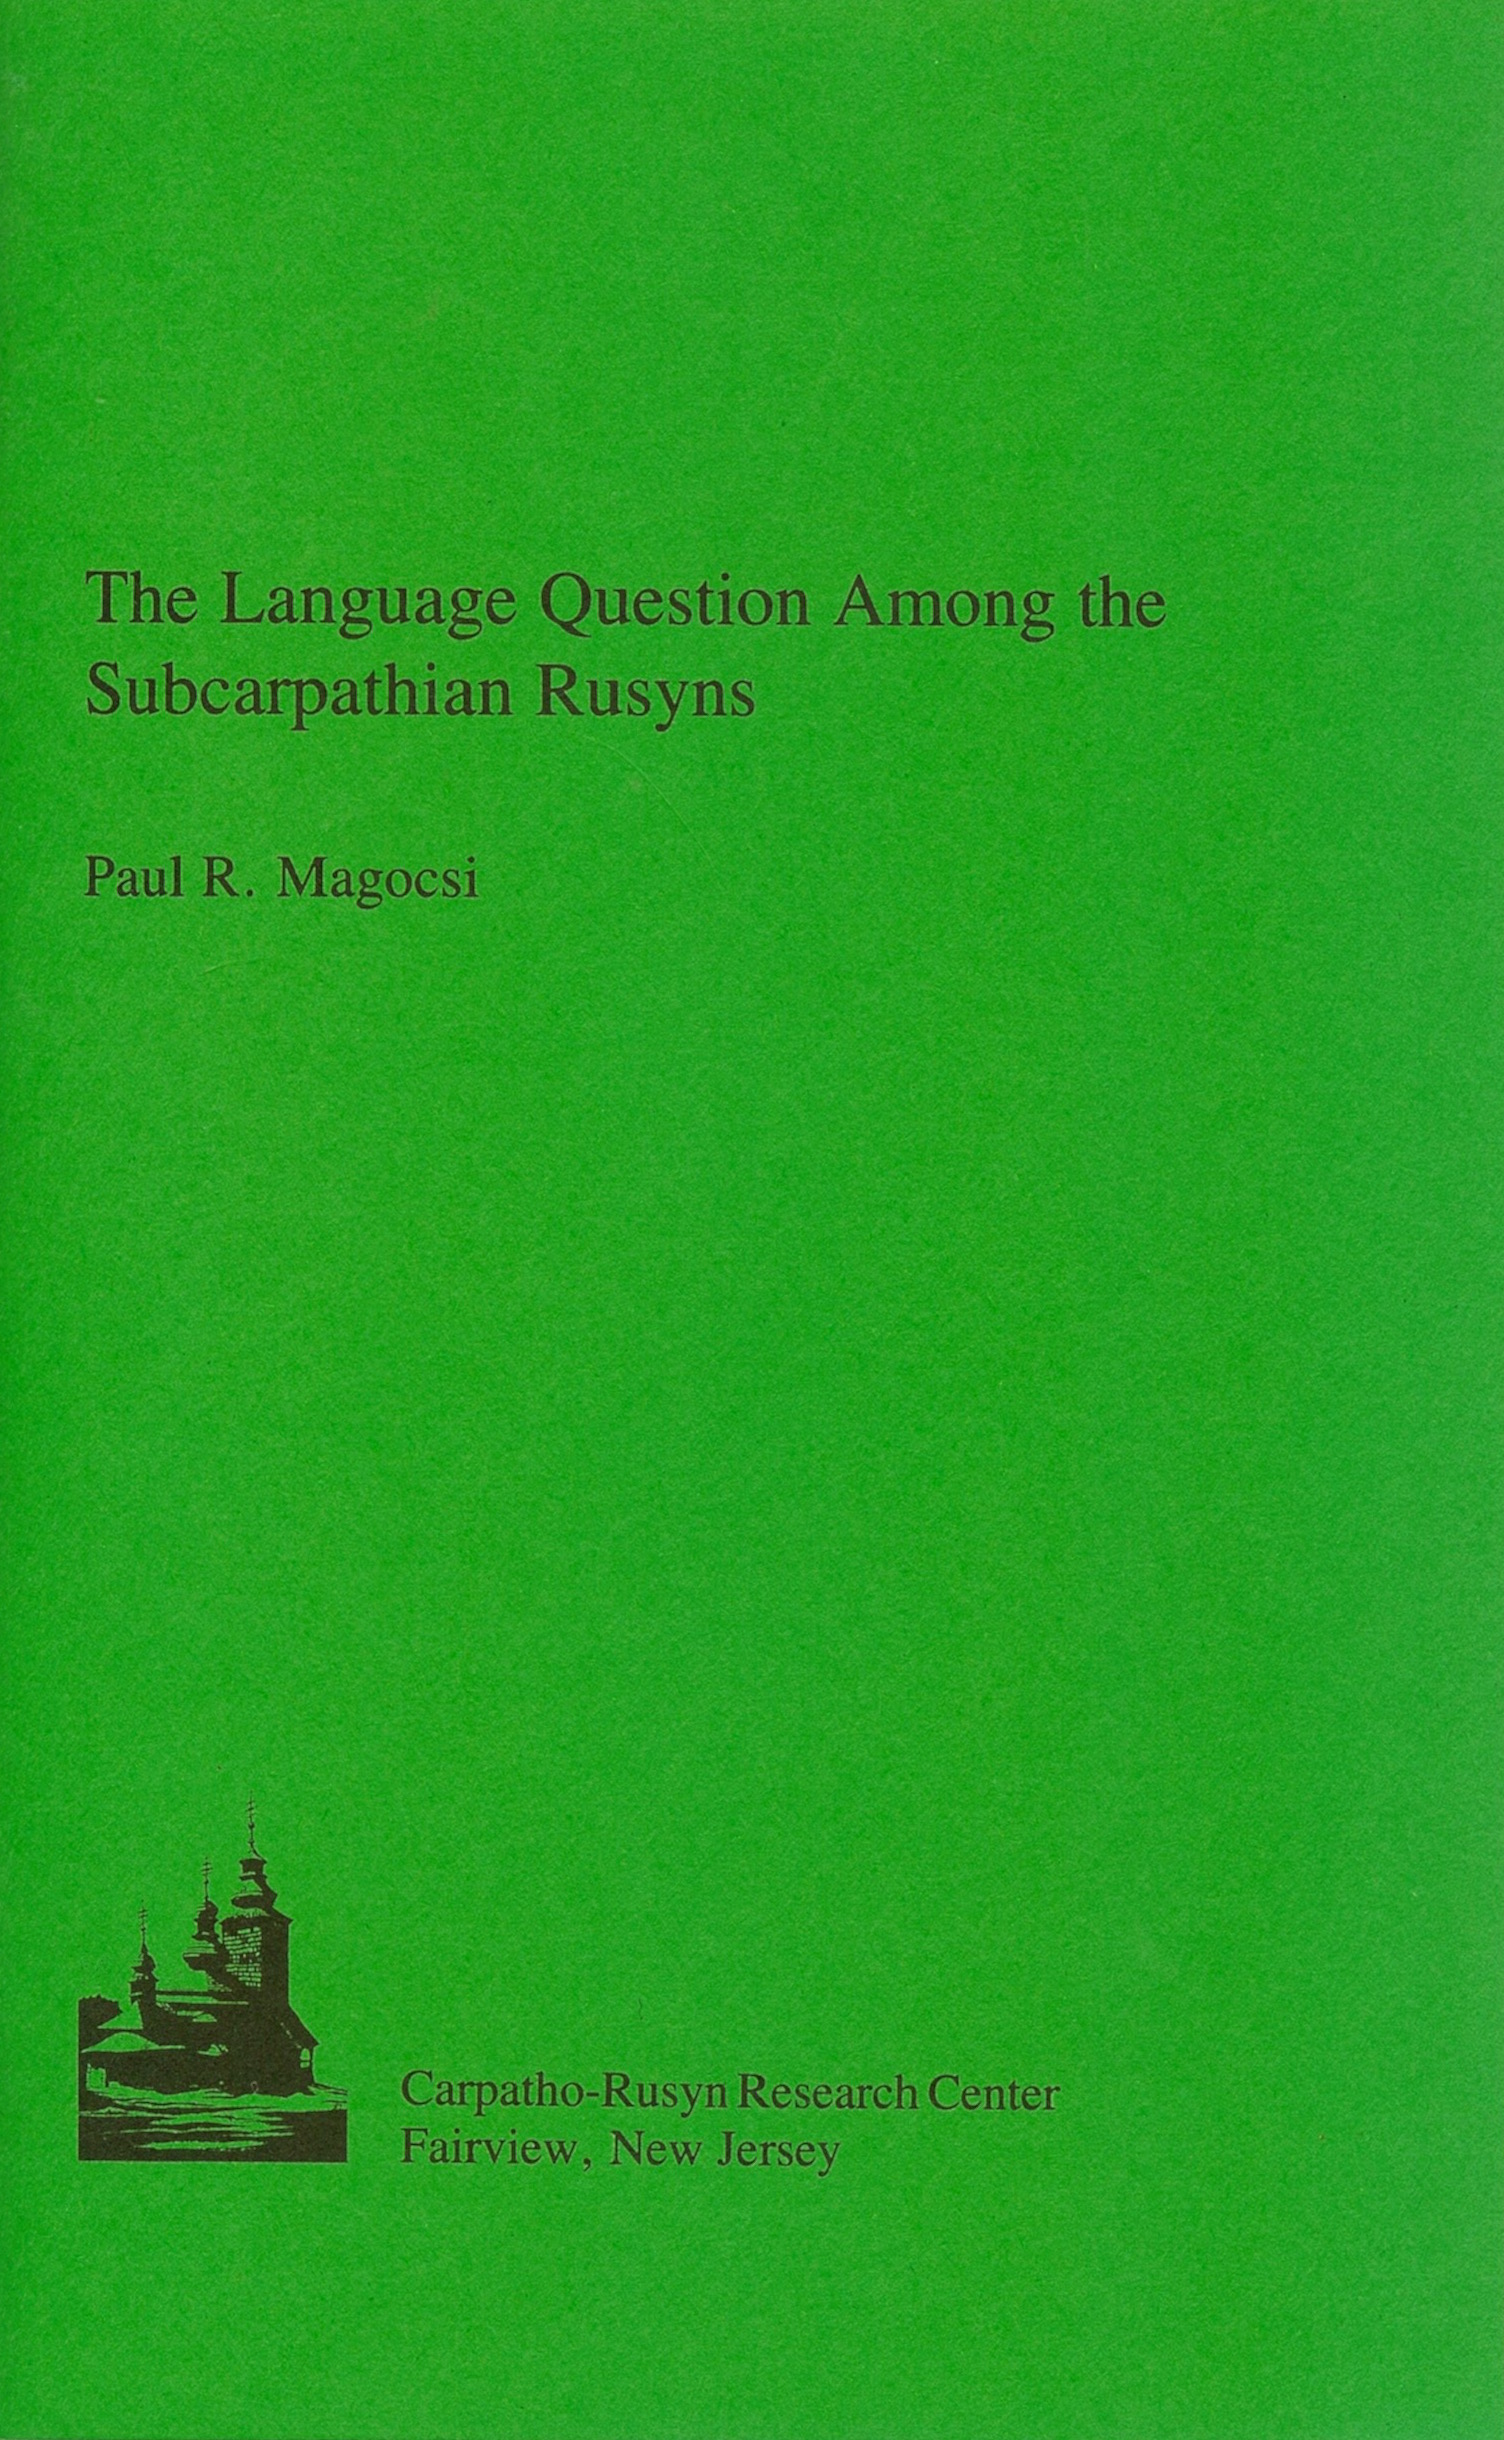 Magocsi - The Language Question Among the Subcarpathian Rusyns